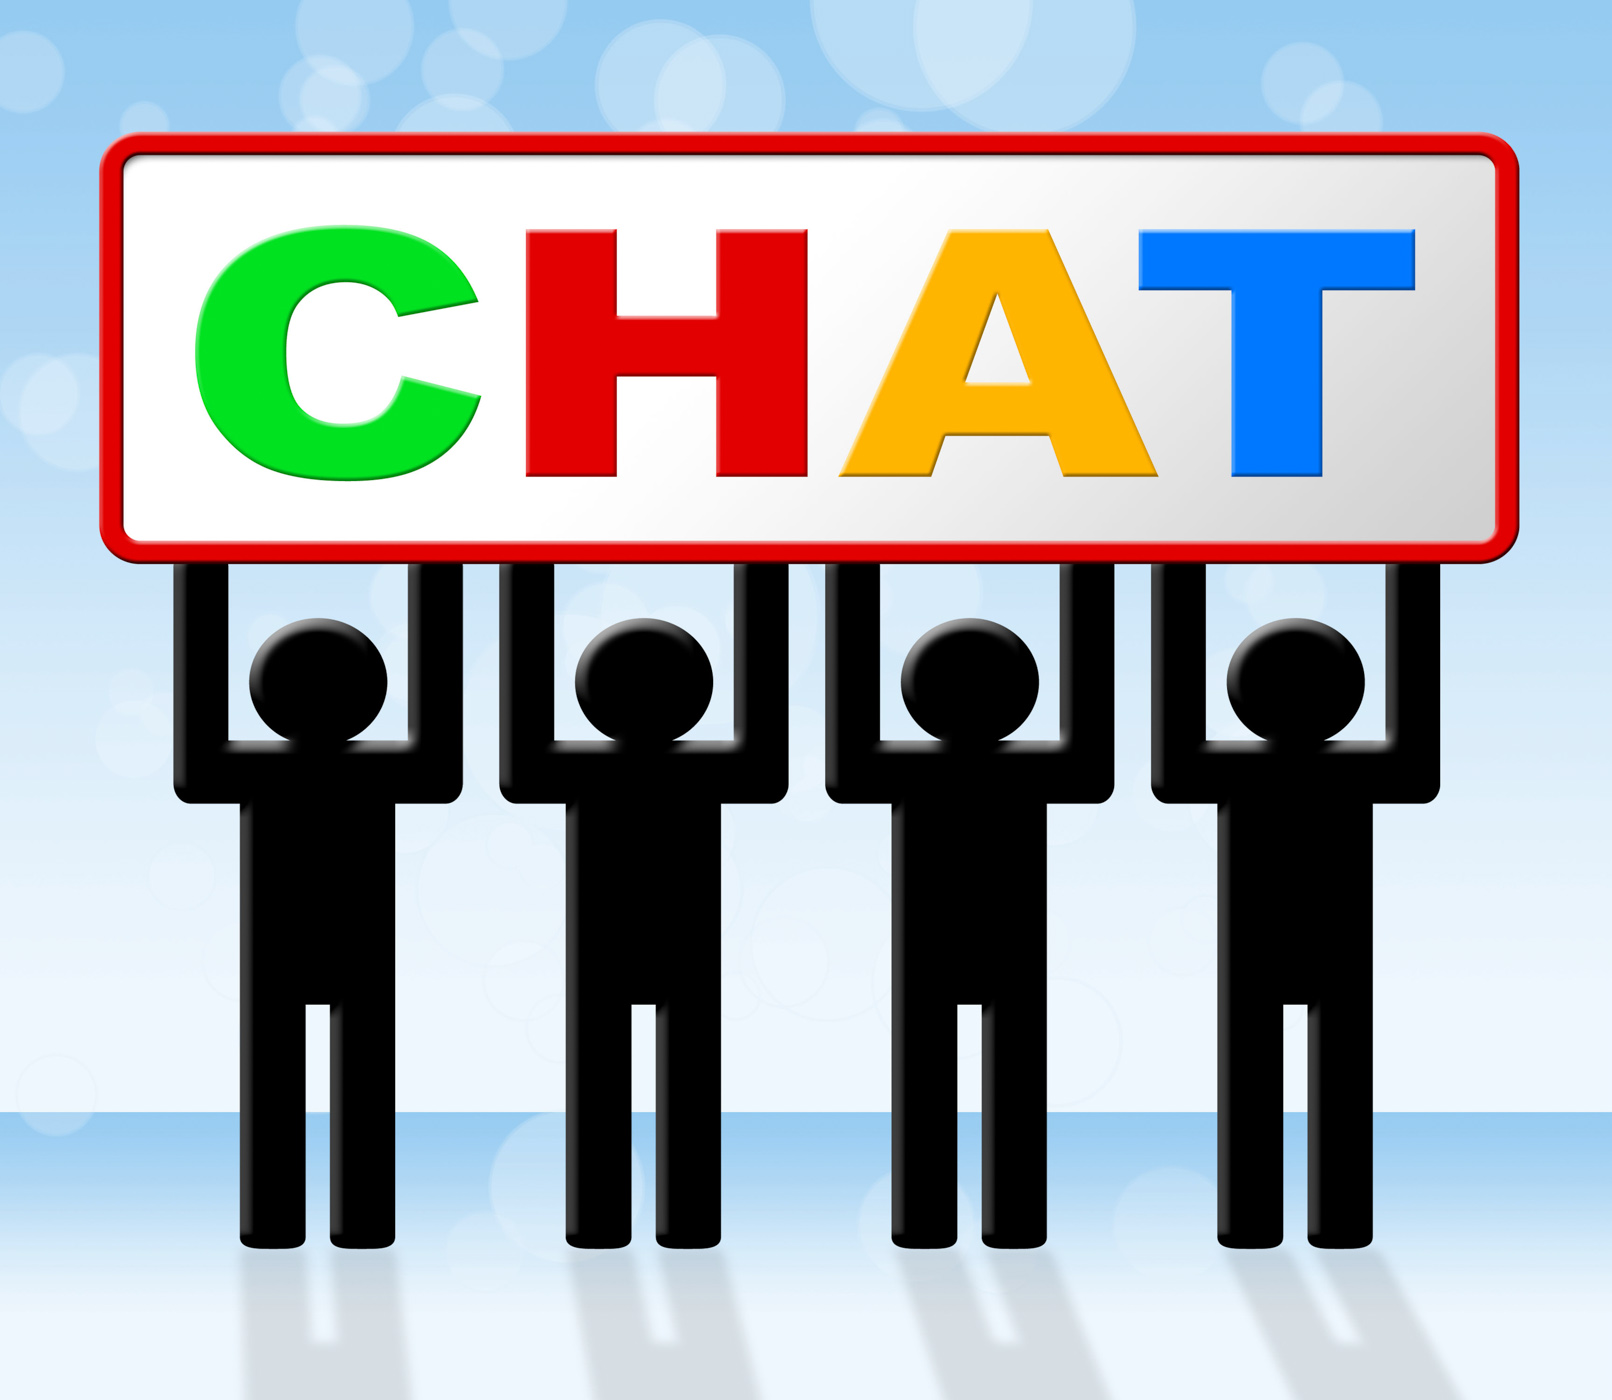 Chatting Chat Means Messenger Communicating And Call, Call, Chat, Chatting, Communicate, HQ Photo